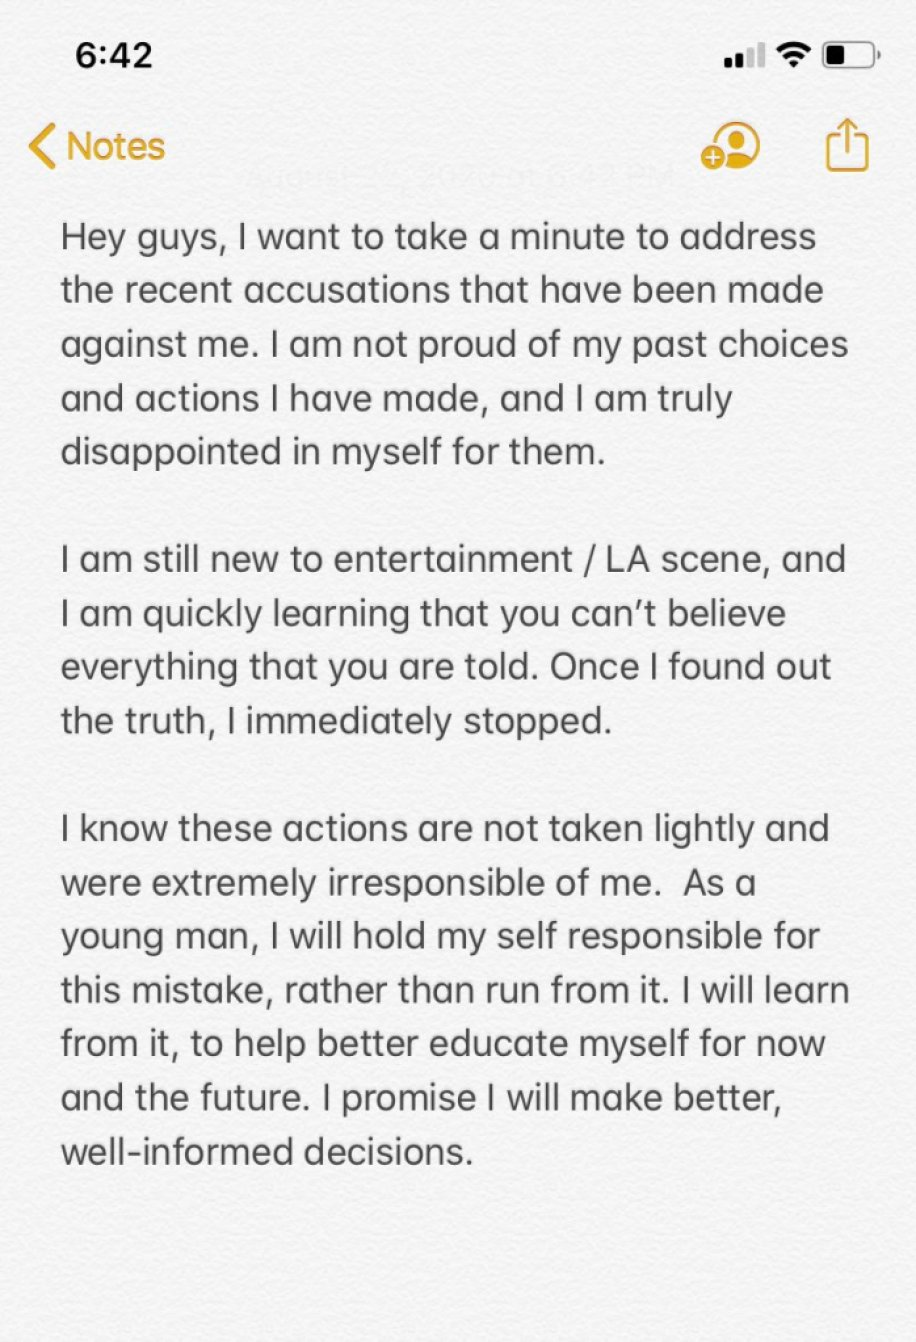 TikTok Star Tony Lopez Apologizes After Coming Under Fire For Allegedly Sending Inappropriate Messages To Underage Girls